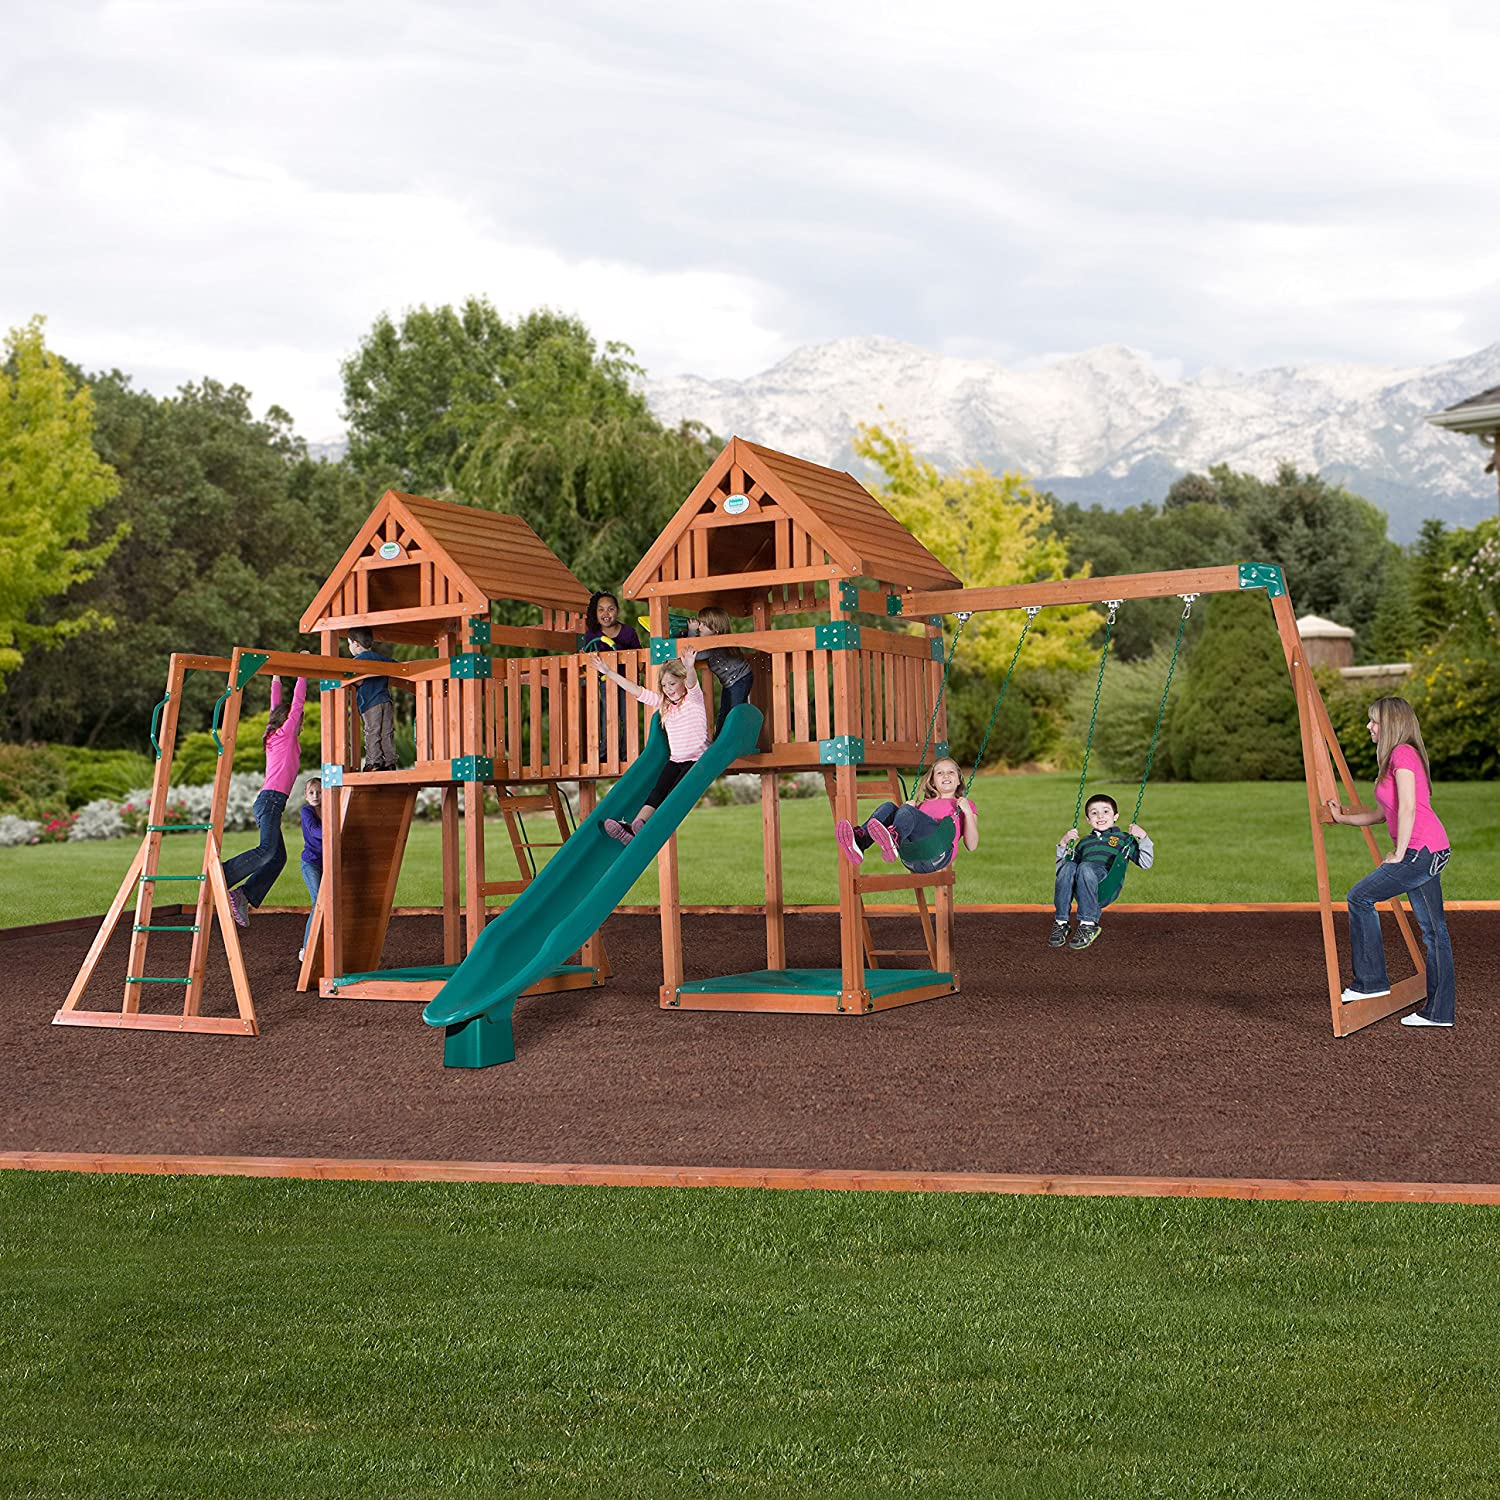 Amazoncom Backyard Discovery Kings Peak All Cedar Wood Playset - Backyard playground equipment